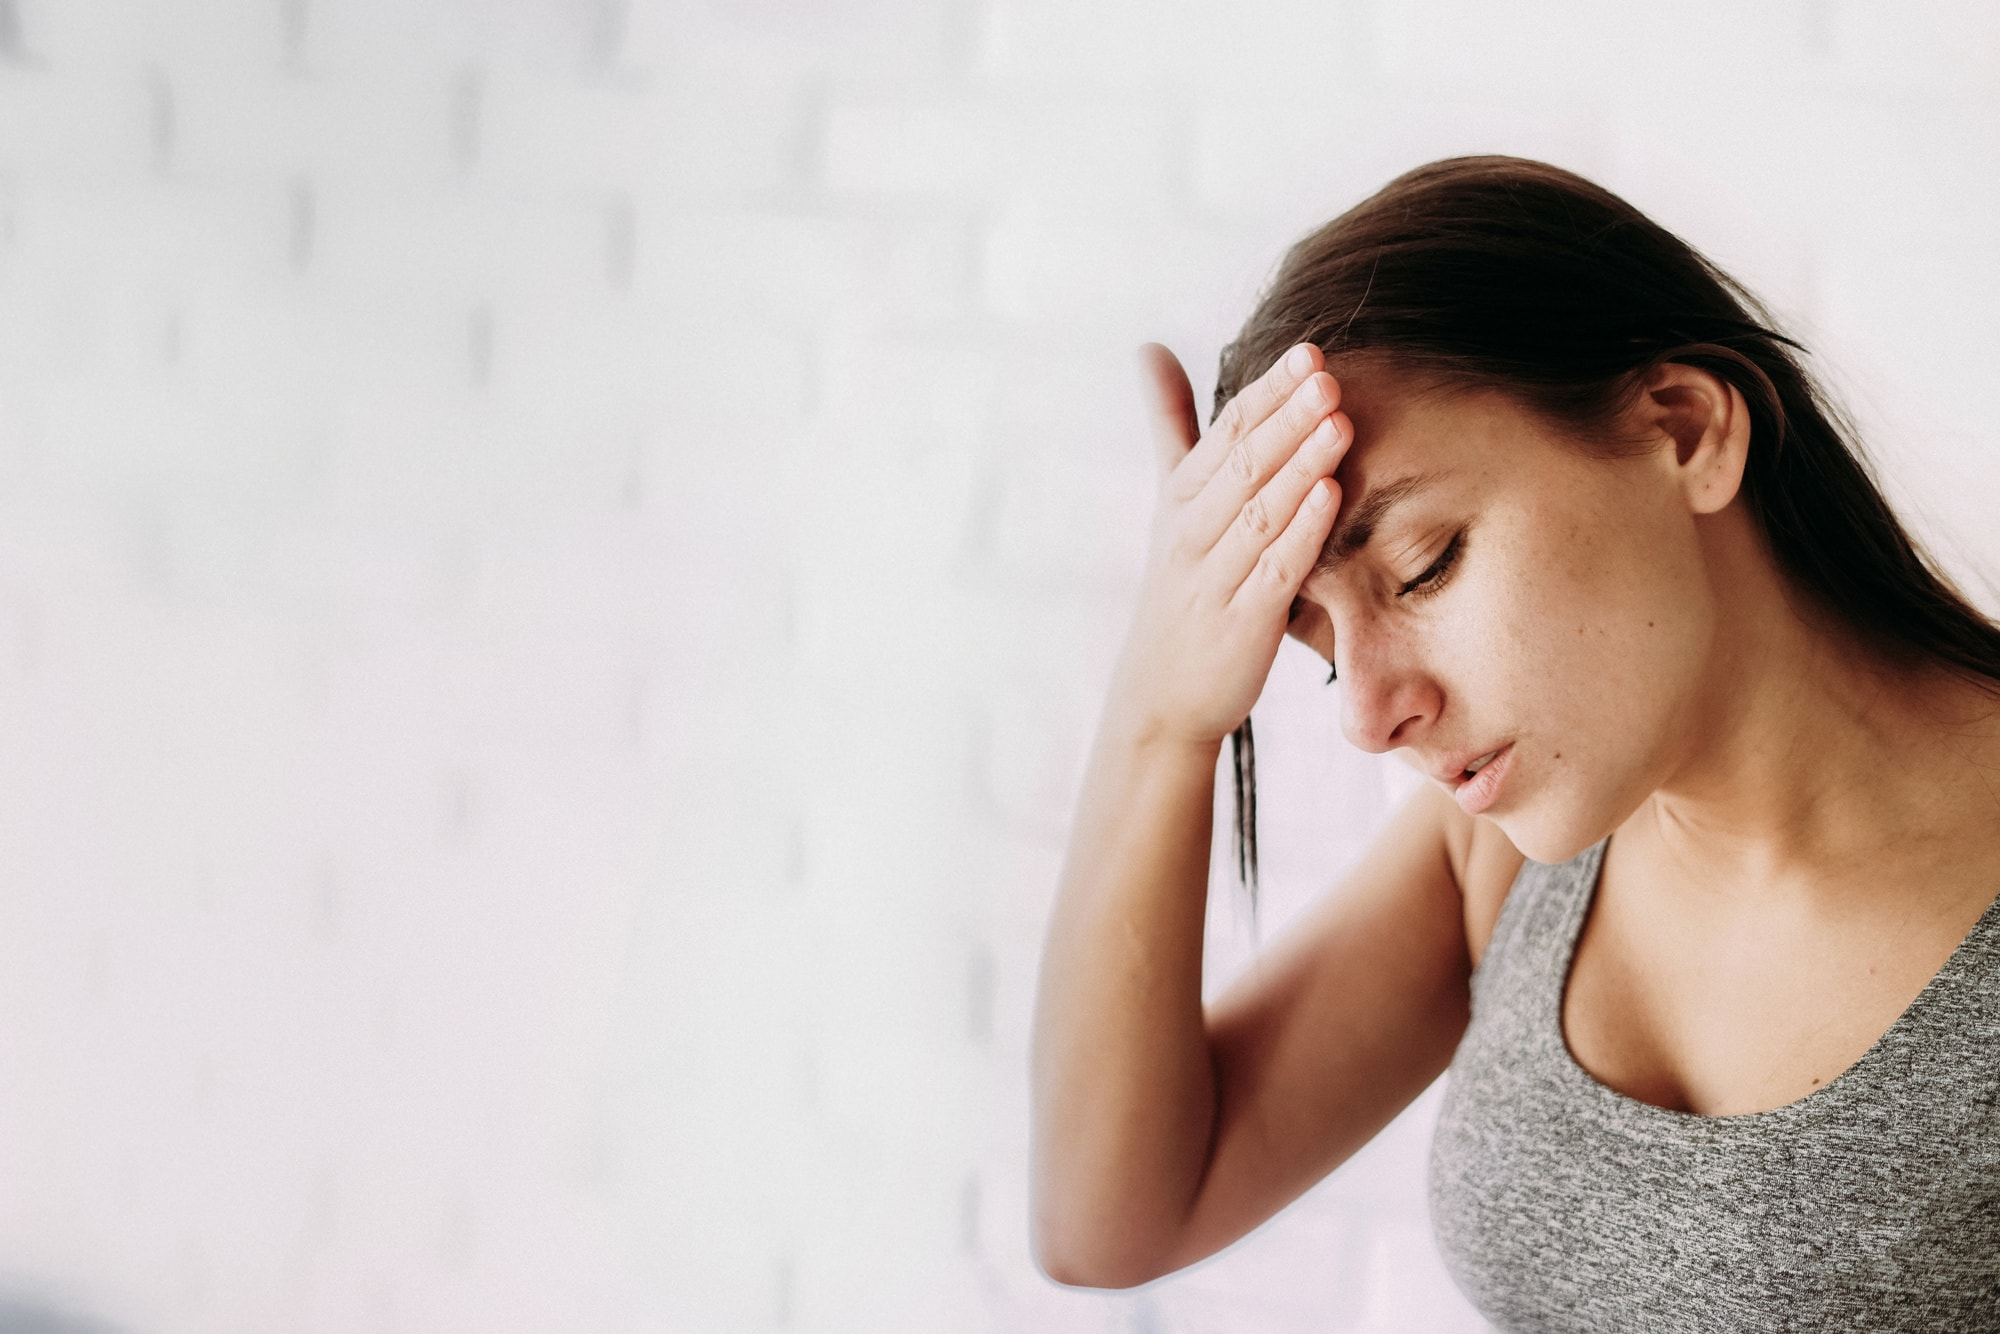 A close-up portrait of a young woman standing sad and holding his head in his hand and a white brick wall in the background. Headache and worries about illness, unemployment, temperature. Copyspace